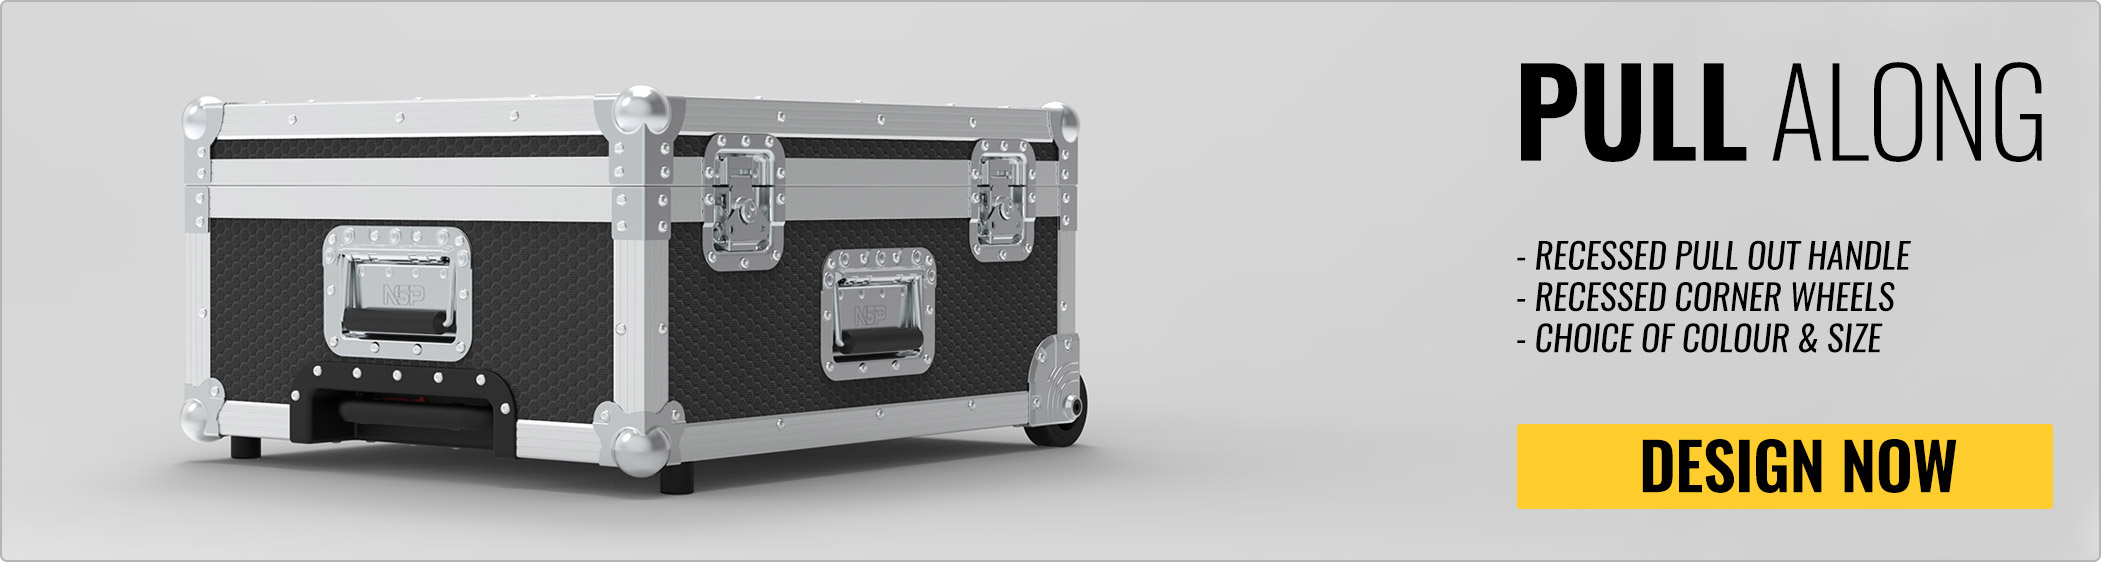 Design your own Pull Along Case